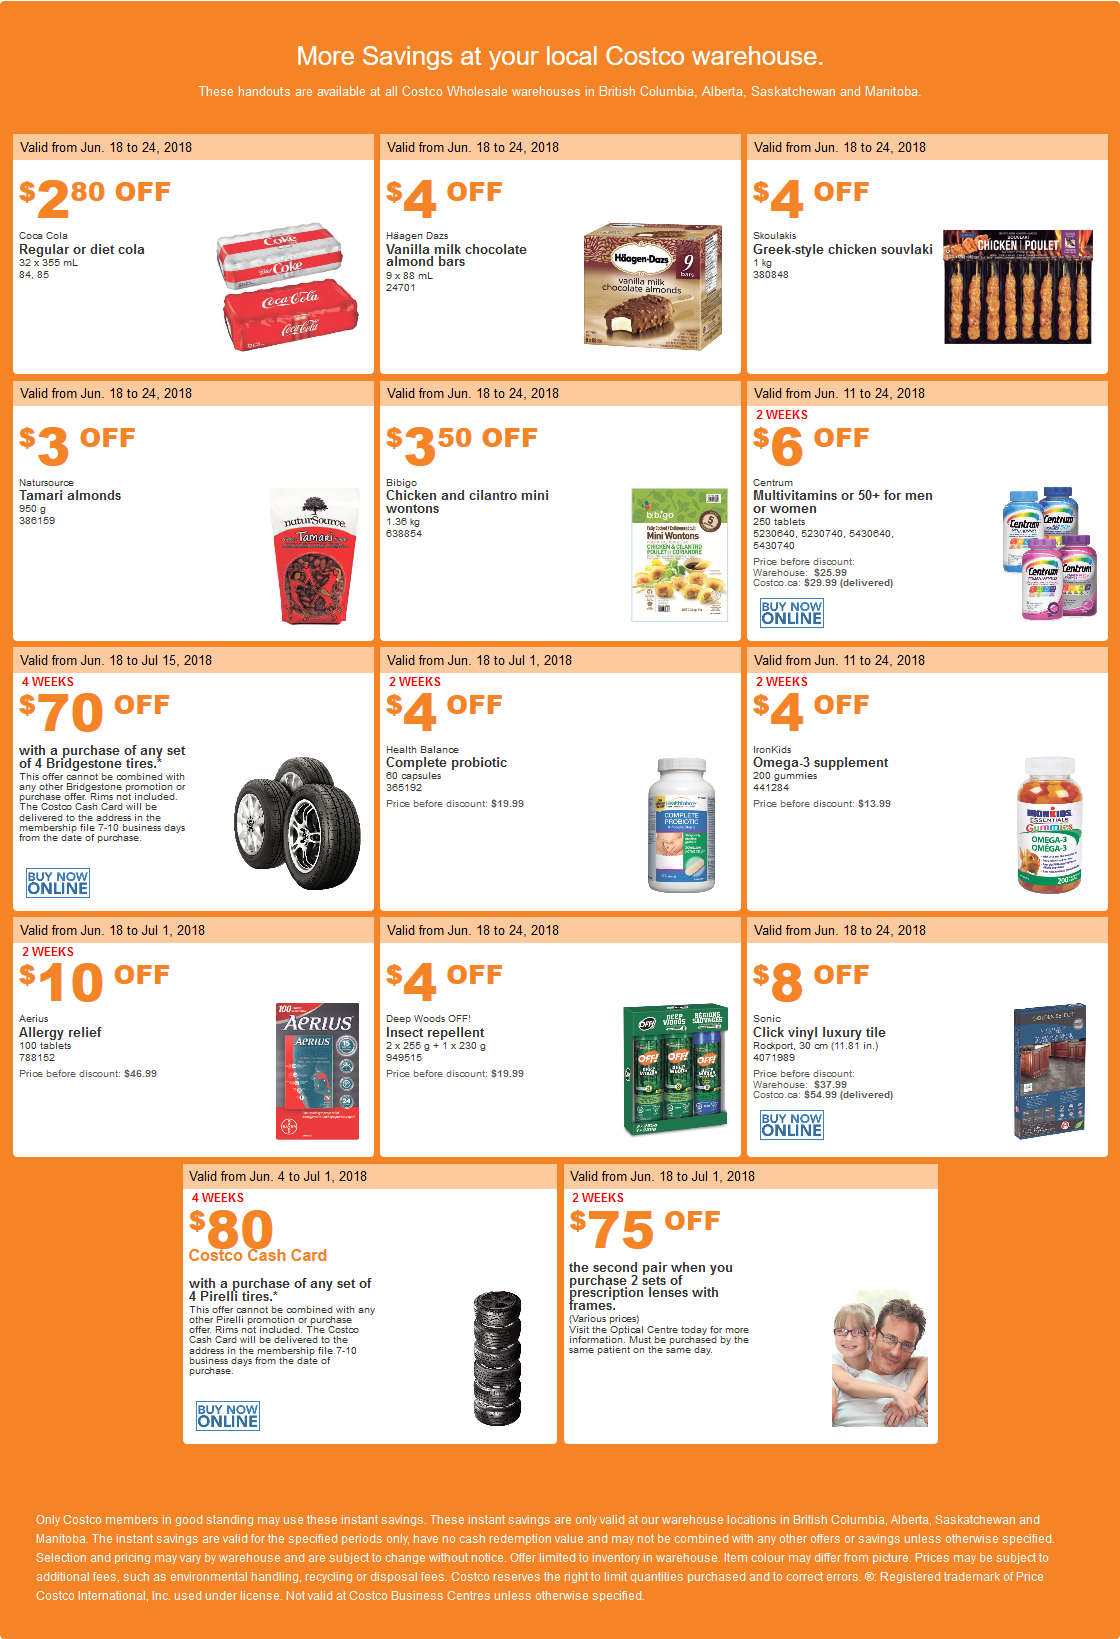 Costco West Sale Items for June 18-24, 2018 for BC, Alberta